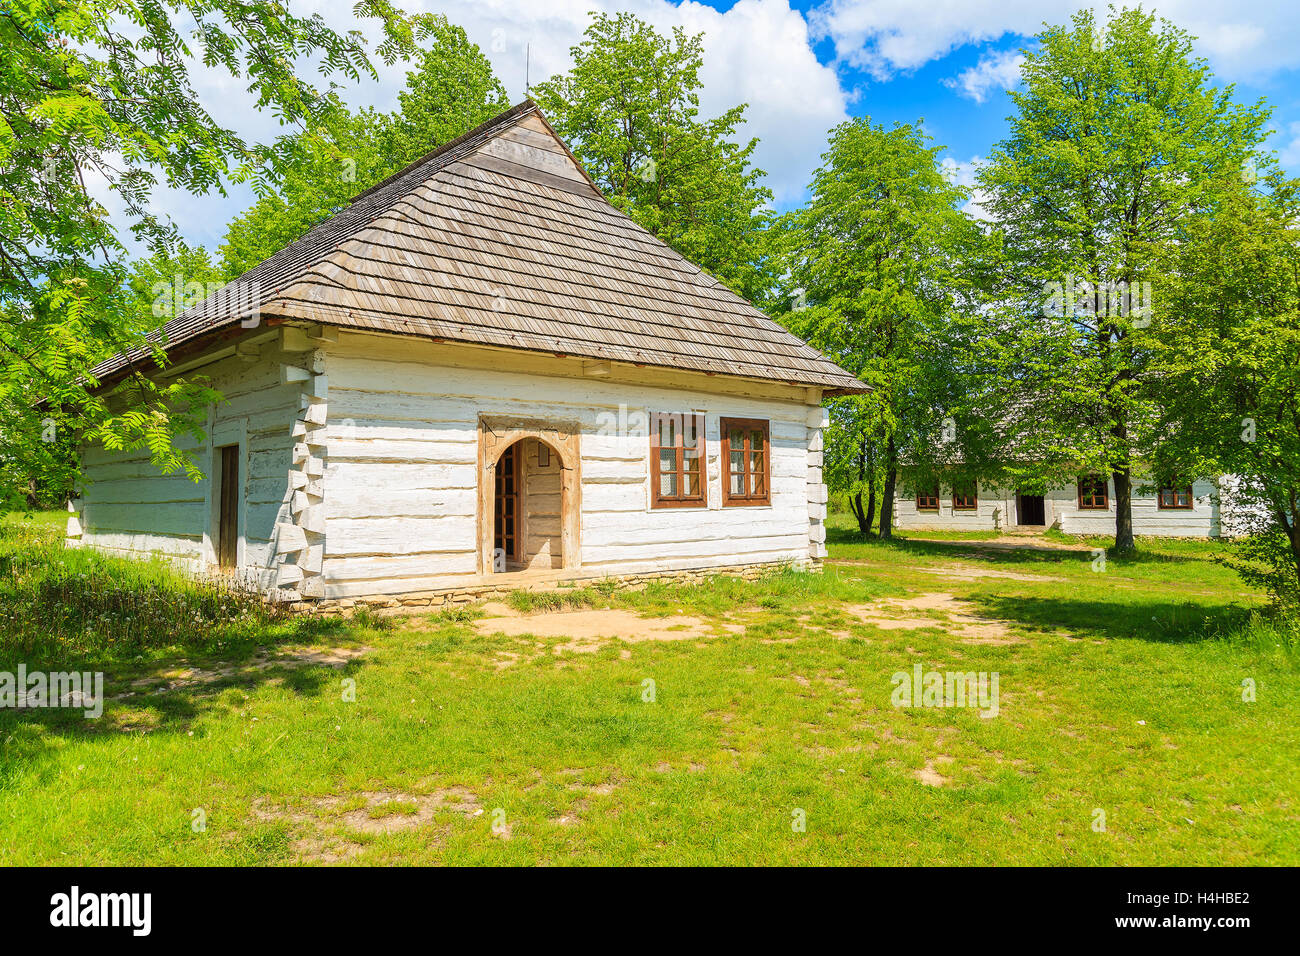 tokarnia village poland may 12 2016 an old rustic cottage house on